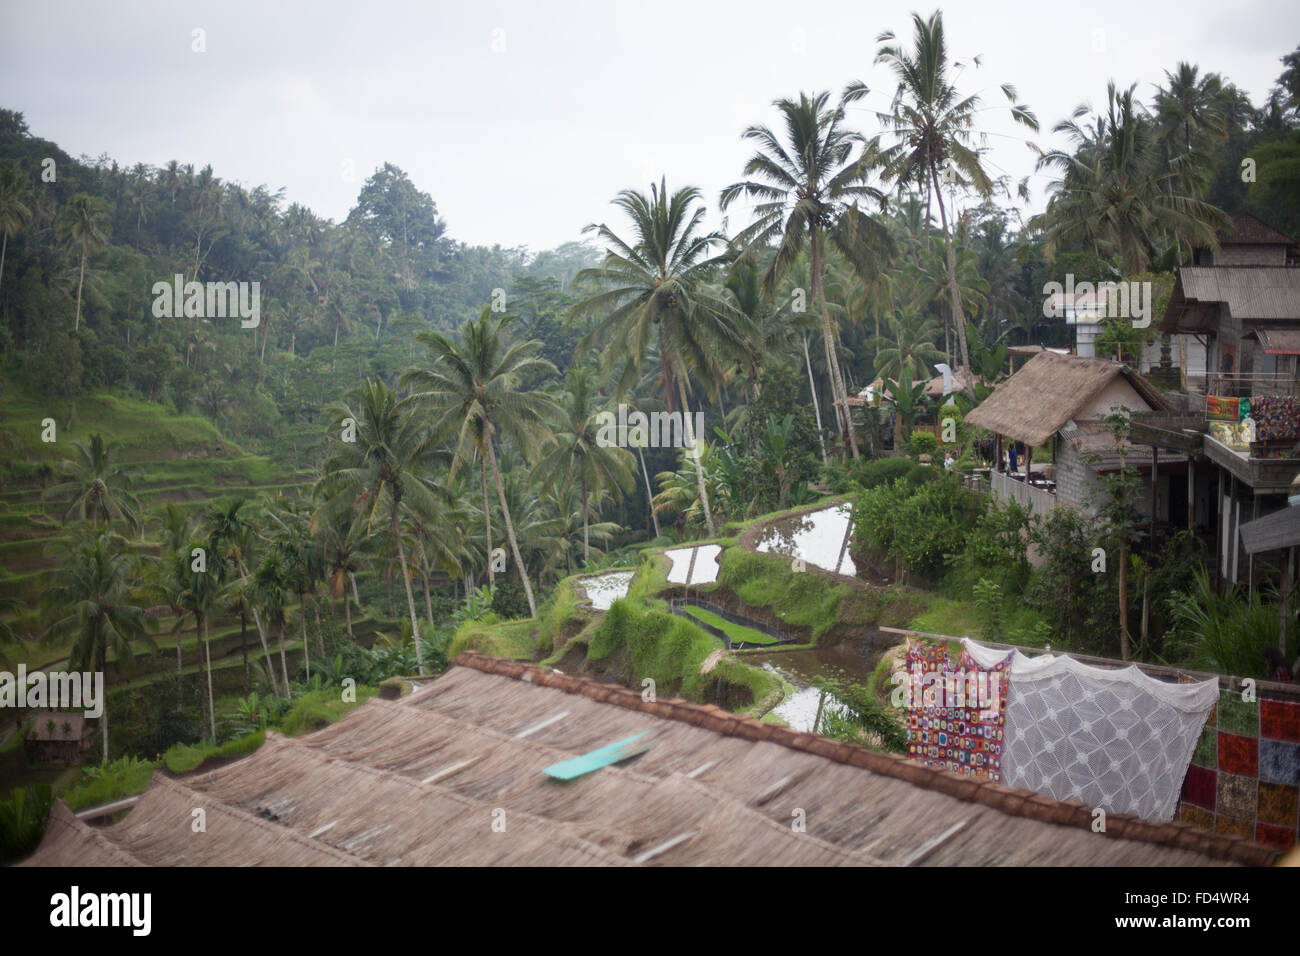 Elevated View Of Country Houses - Stock Image